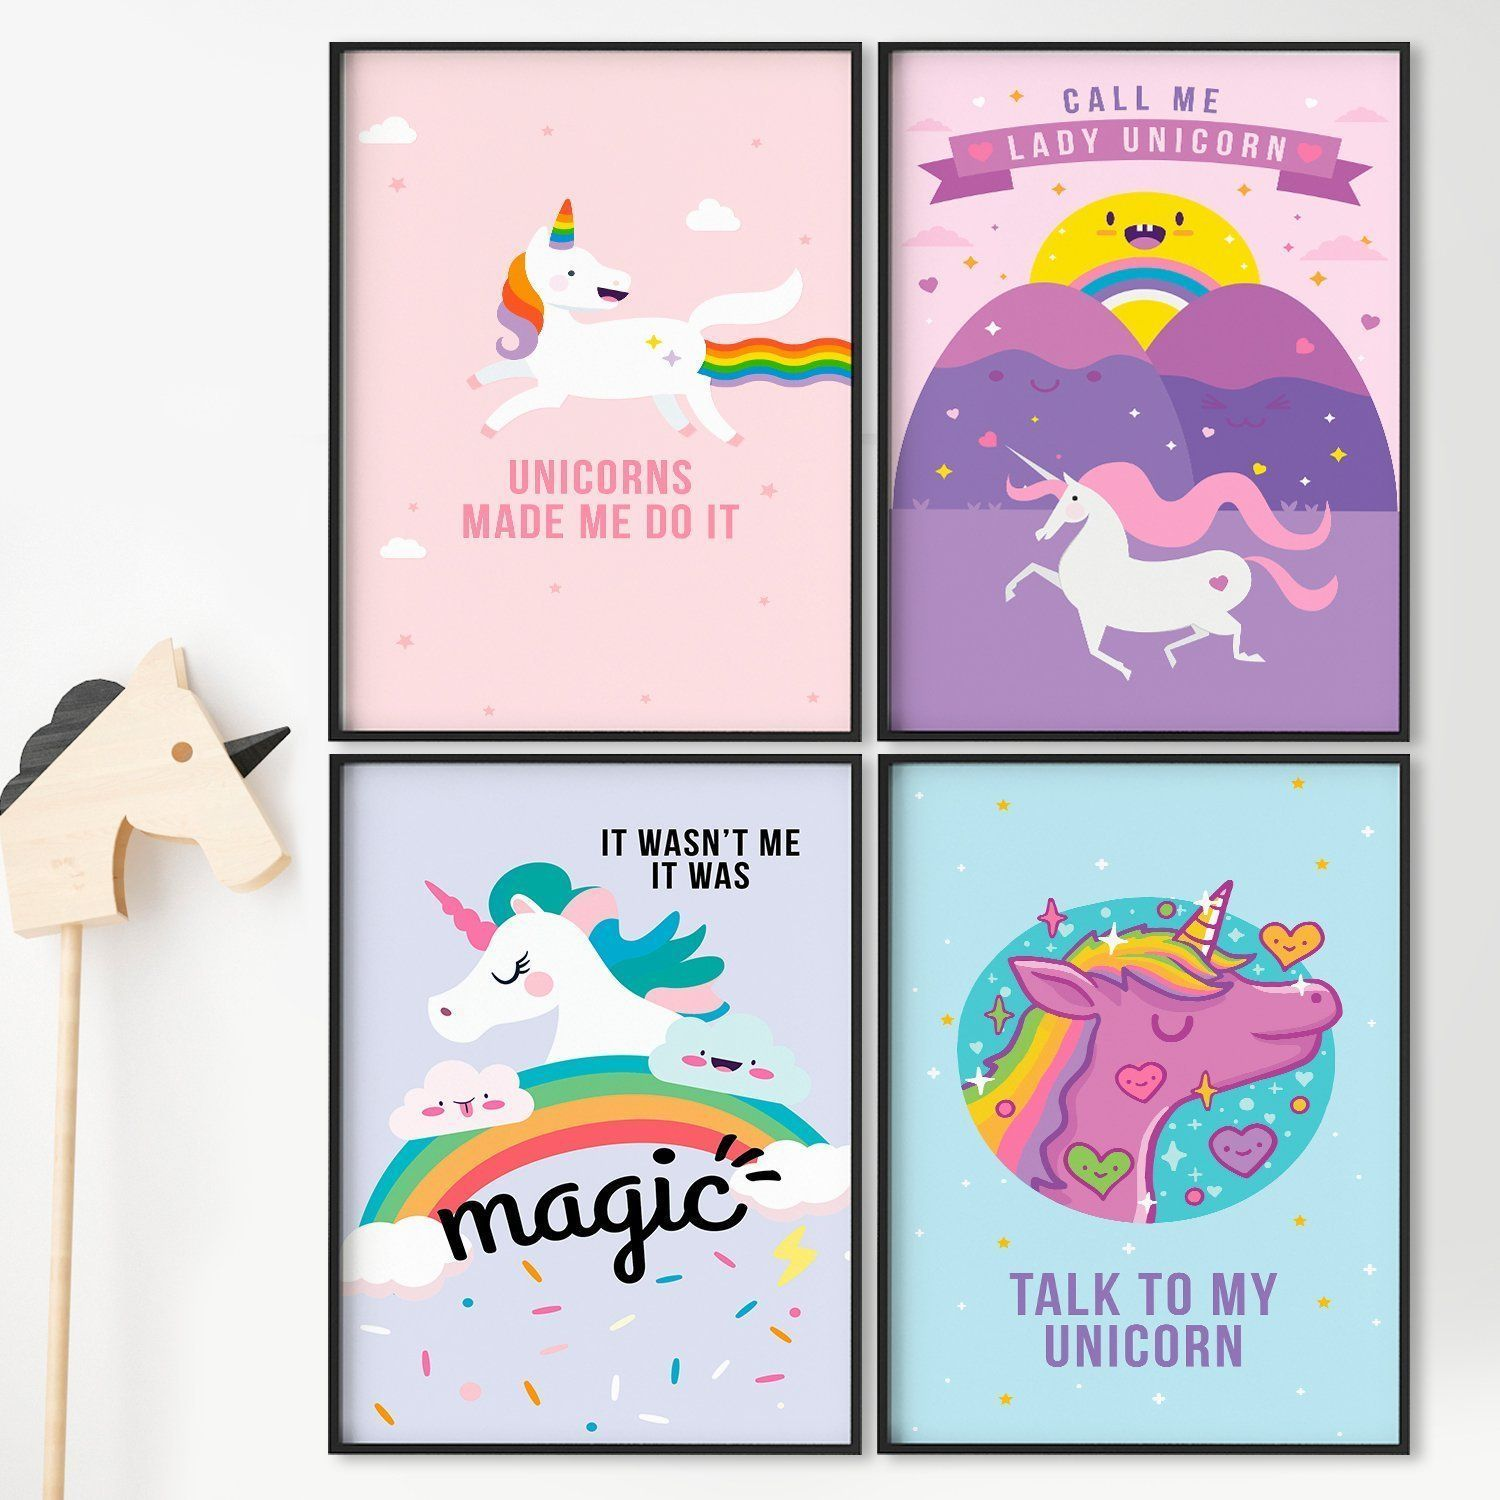 Set Of Four 11x17 Magical Posters By Pillow Toast Unicorns